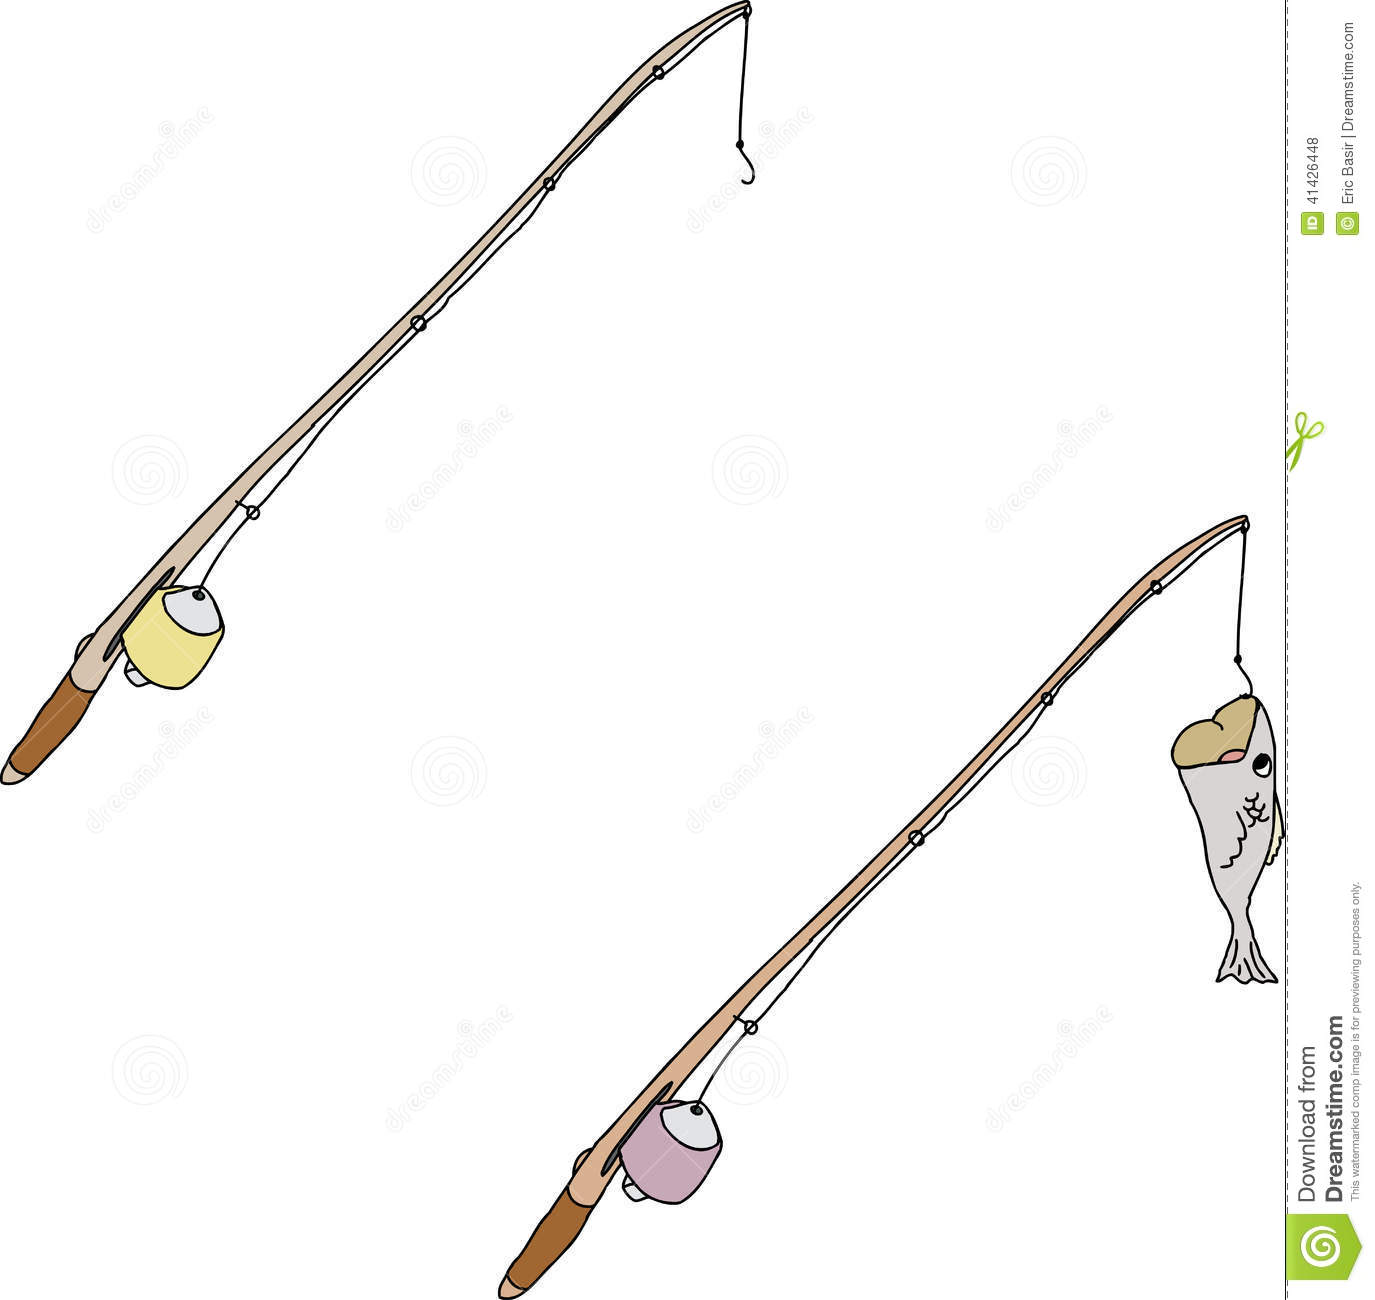 Cartoon fishing poles stock vector image 41426448 for Pictures of fishing poles